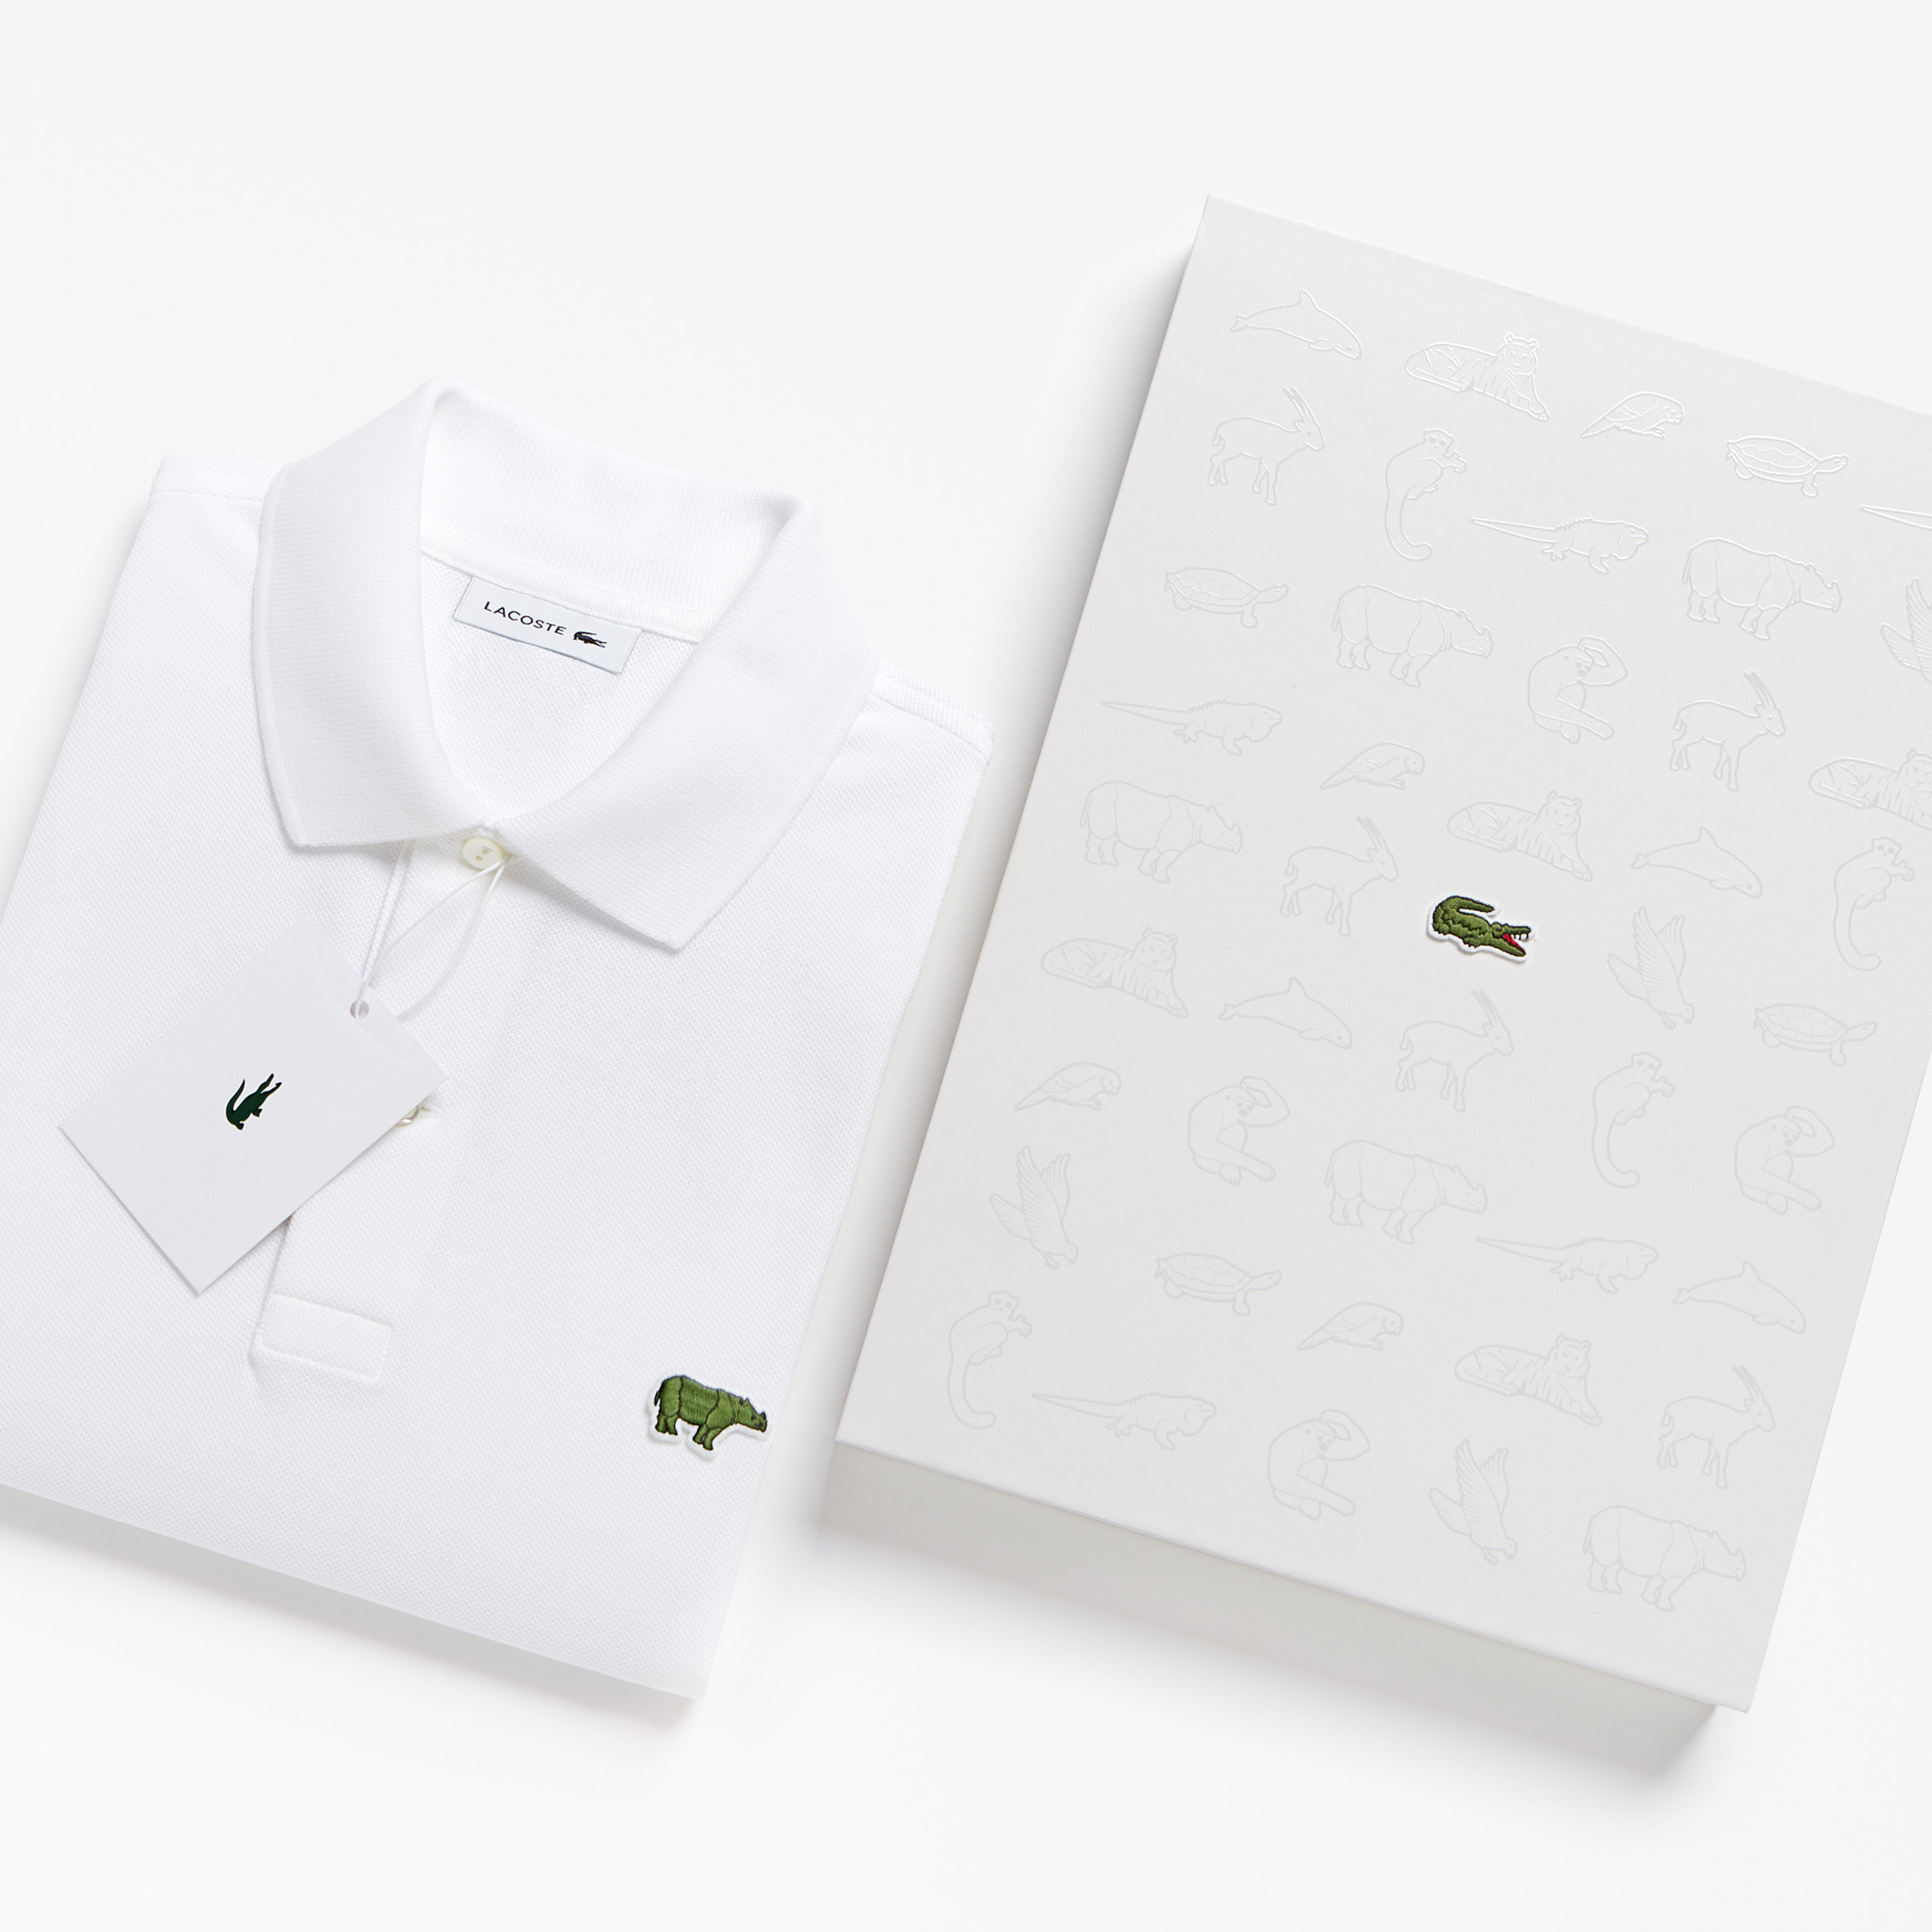 4f19664126e382 Lacoste replaces crocodile logo with endangered species for limited-edition  polos